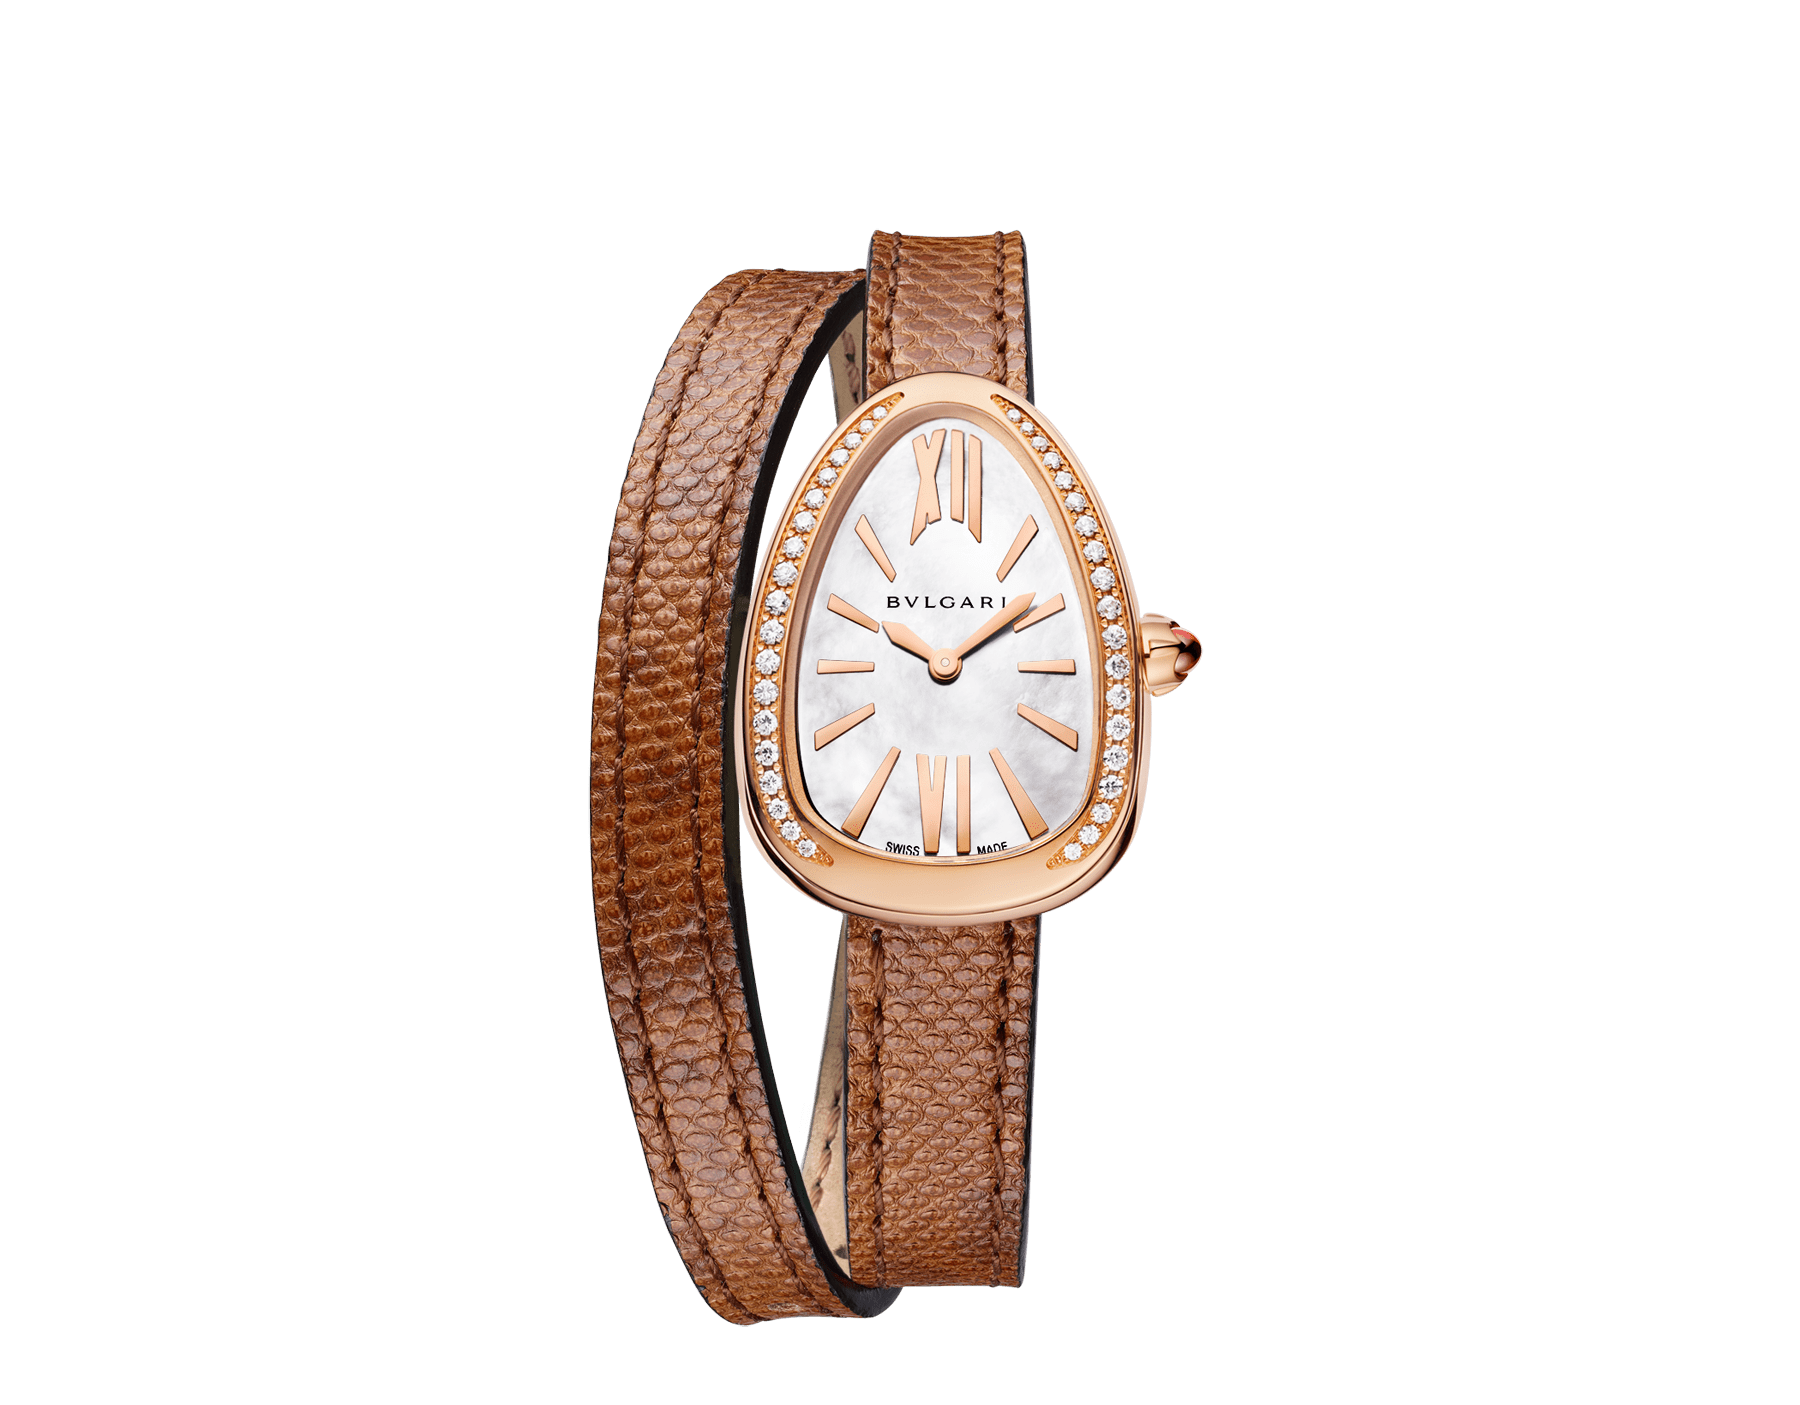 Serpenti watch with 18 kt rose gold case set with brilliant cut diamonds, white mother-of-pearl dial and interchangeable double spiral bracelet in brown karung leather. 102727 image 1